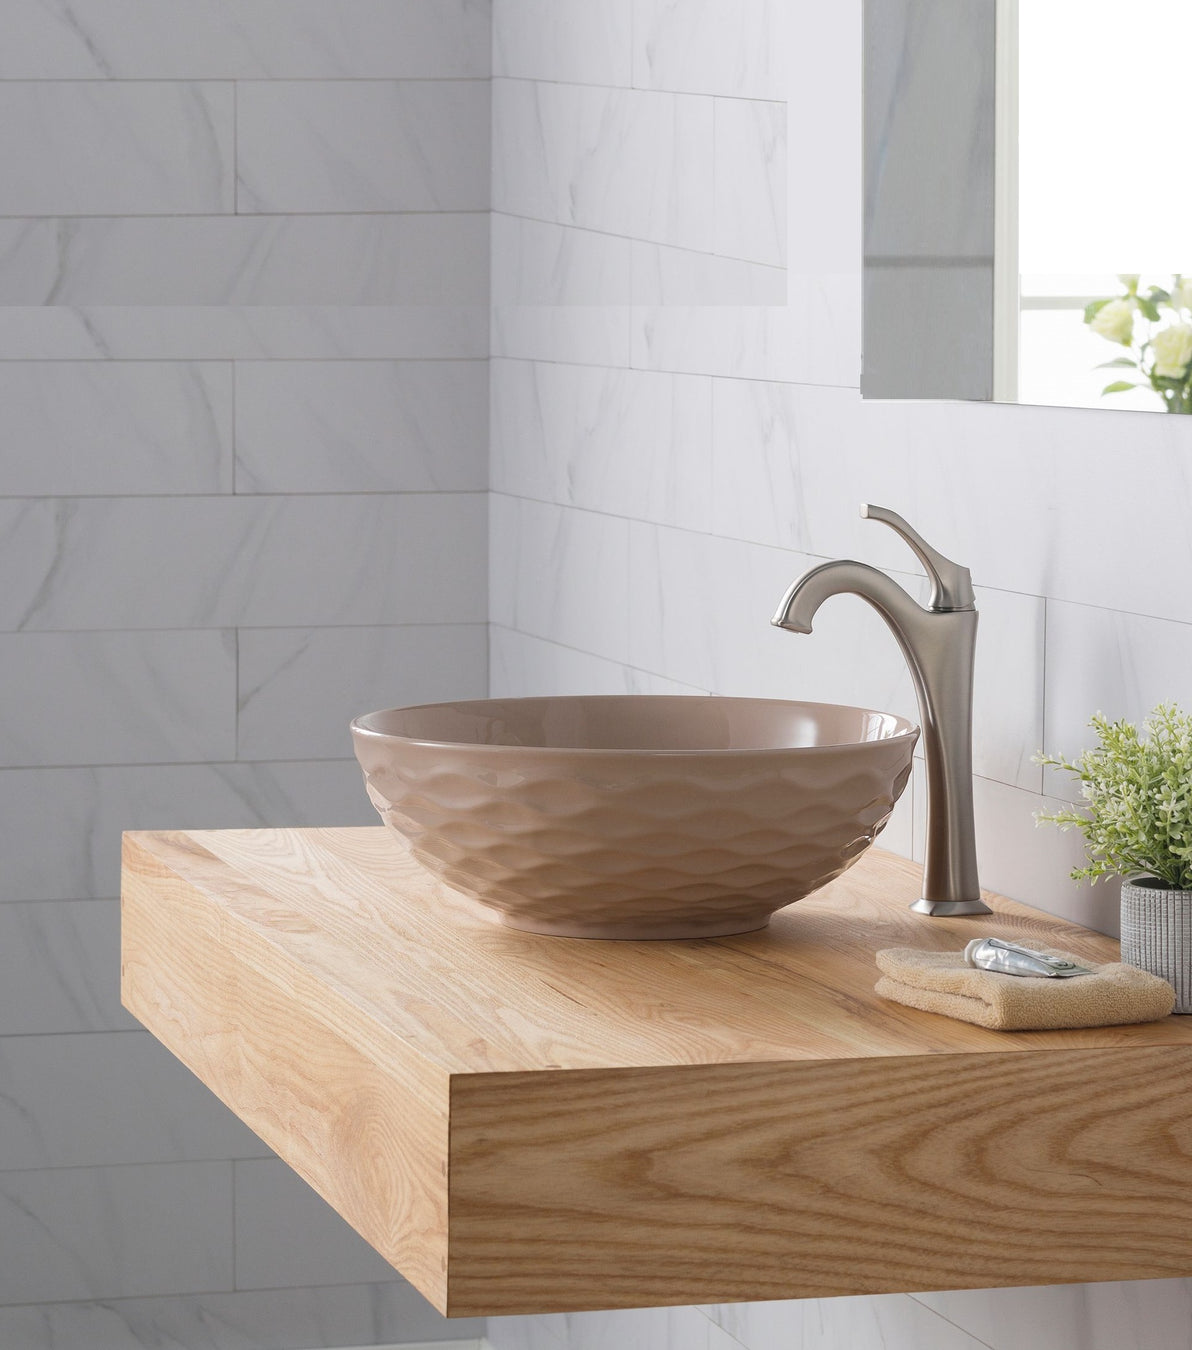 bathroom sink, vessel sinks, up to 65% off at DirectSinks.com